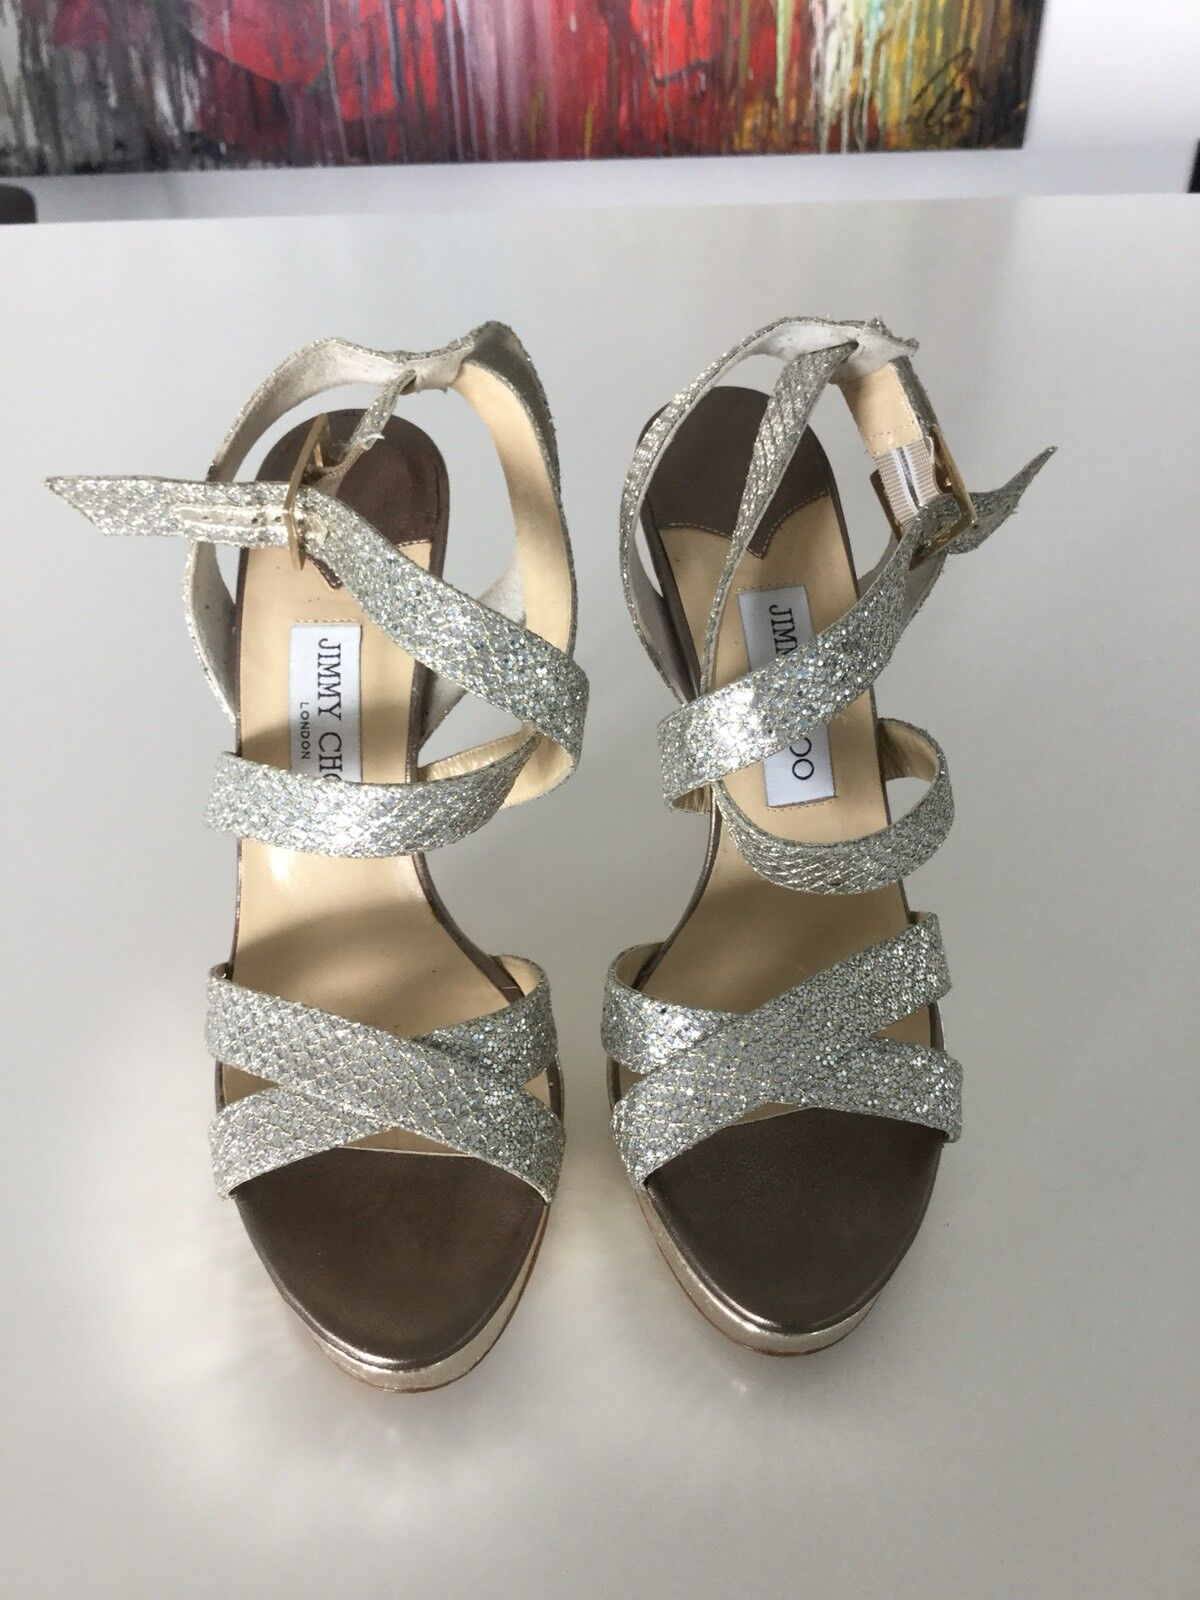 JIMMY CHOO Highheels Gold Glitzer in Gr. 39,5